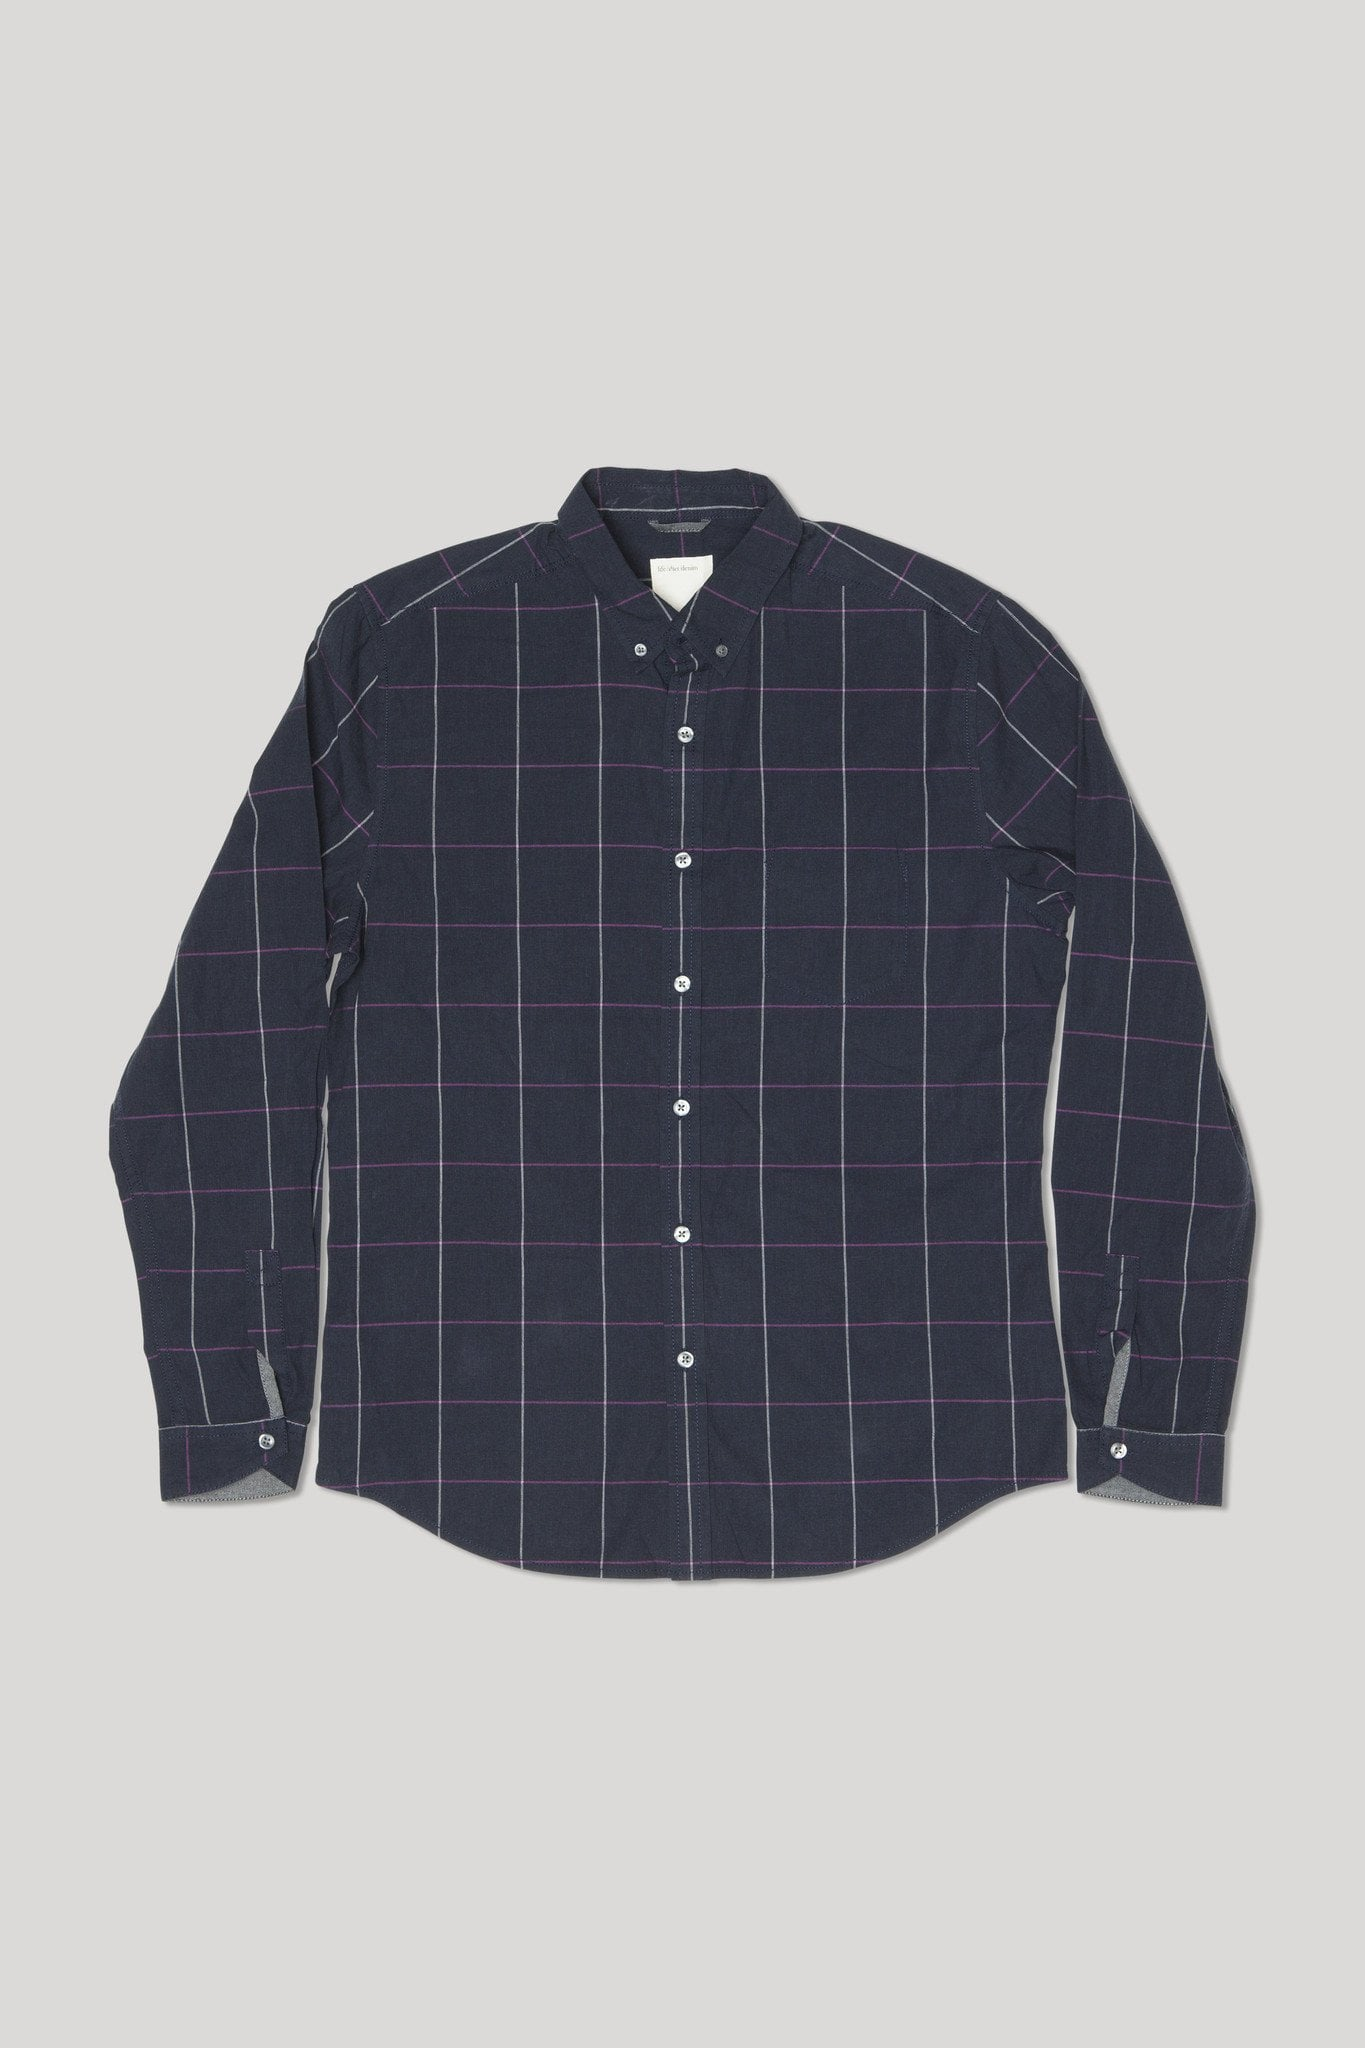 Gridiron Shirt - Heather NYPD Blue